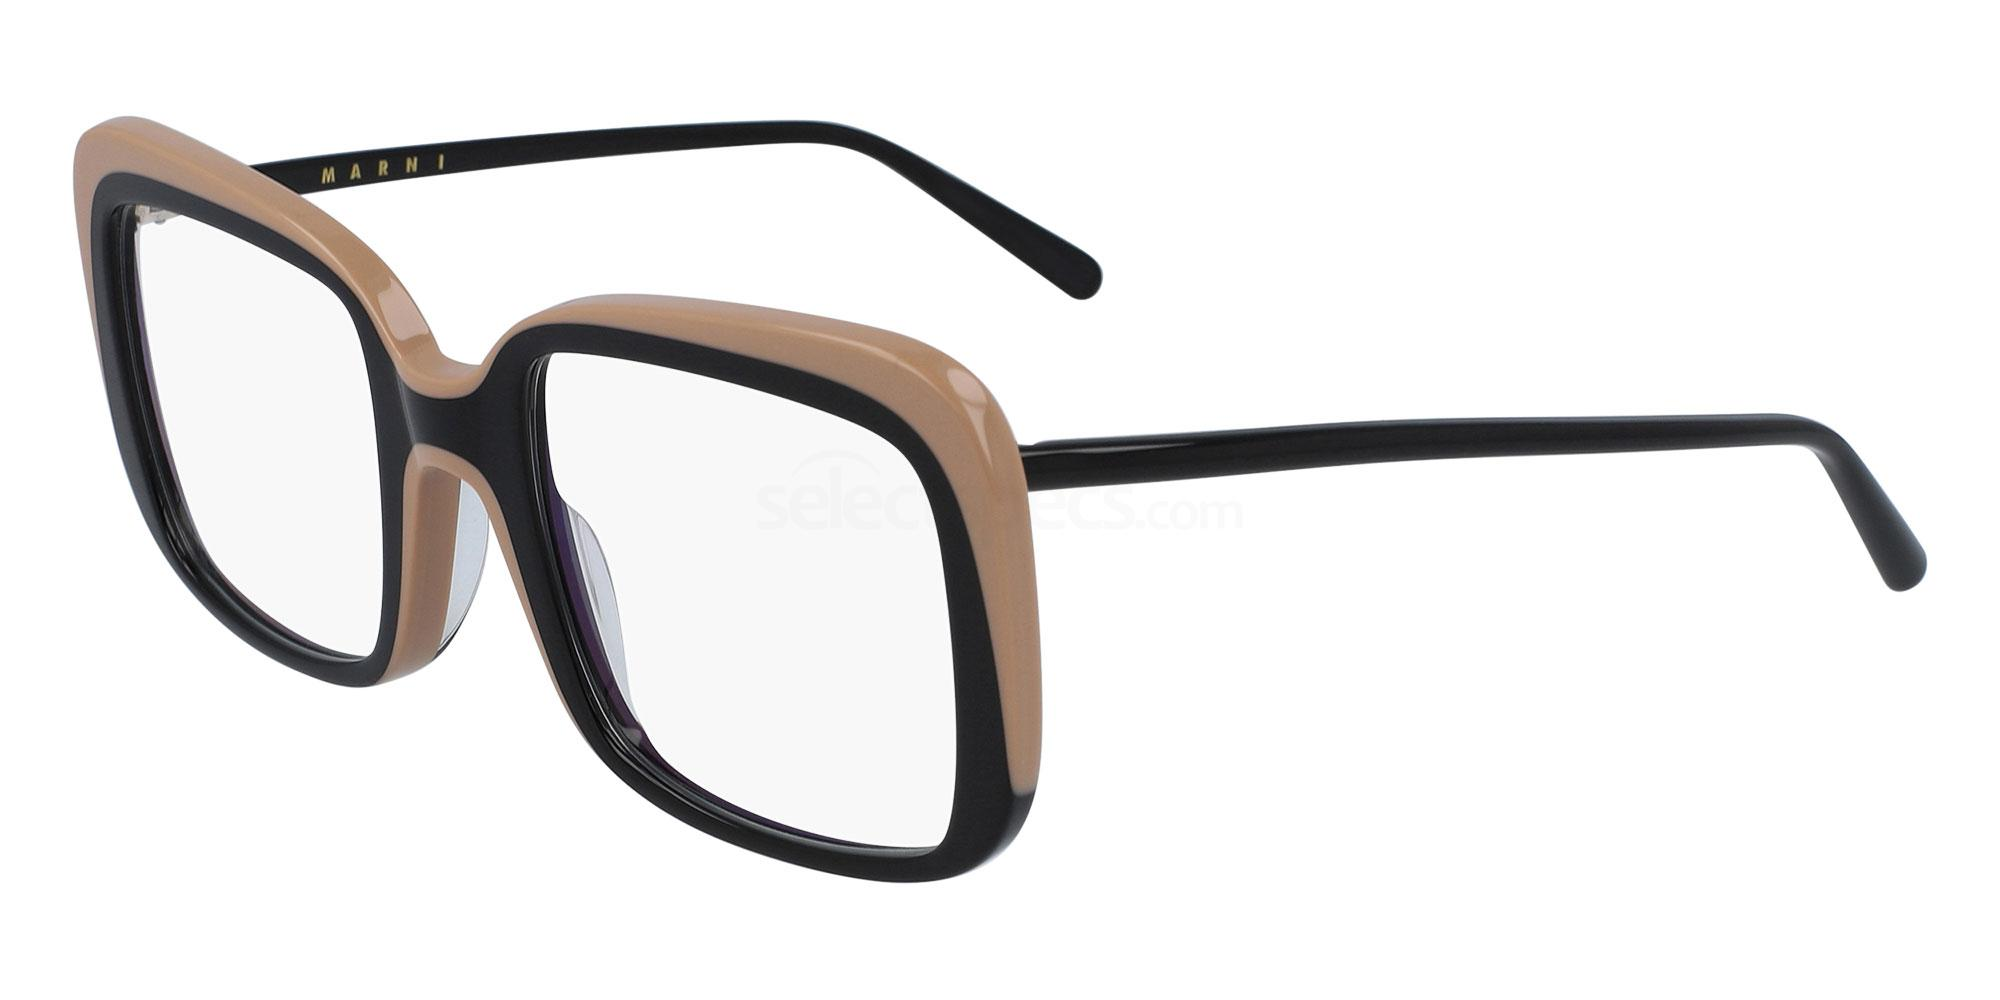 010 ME2623 Glasses, Marni